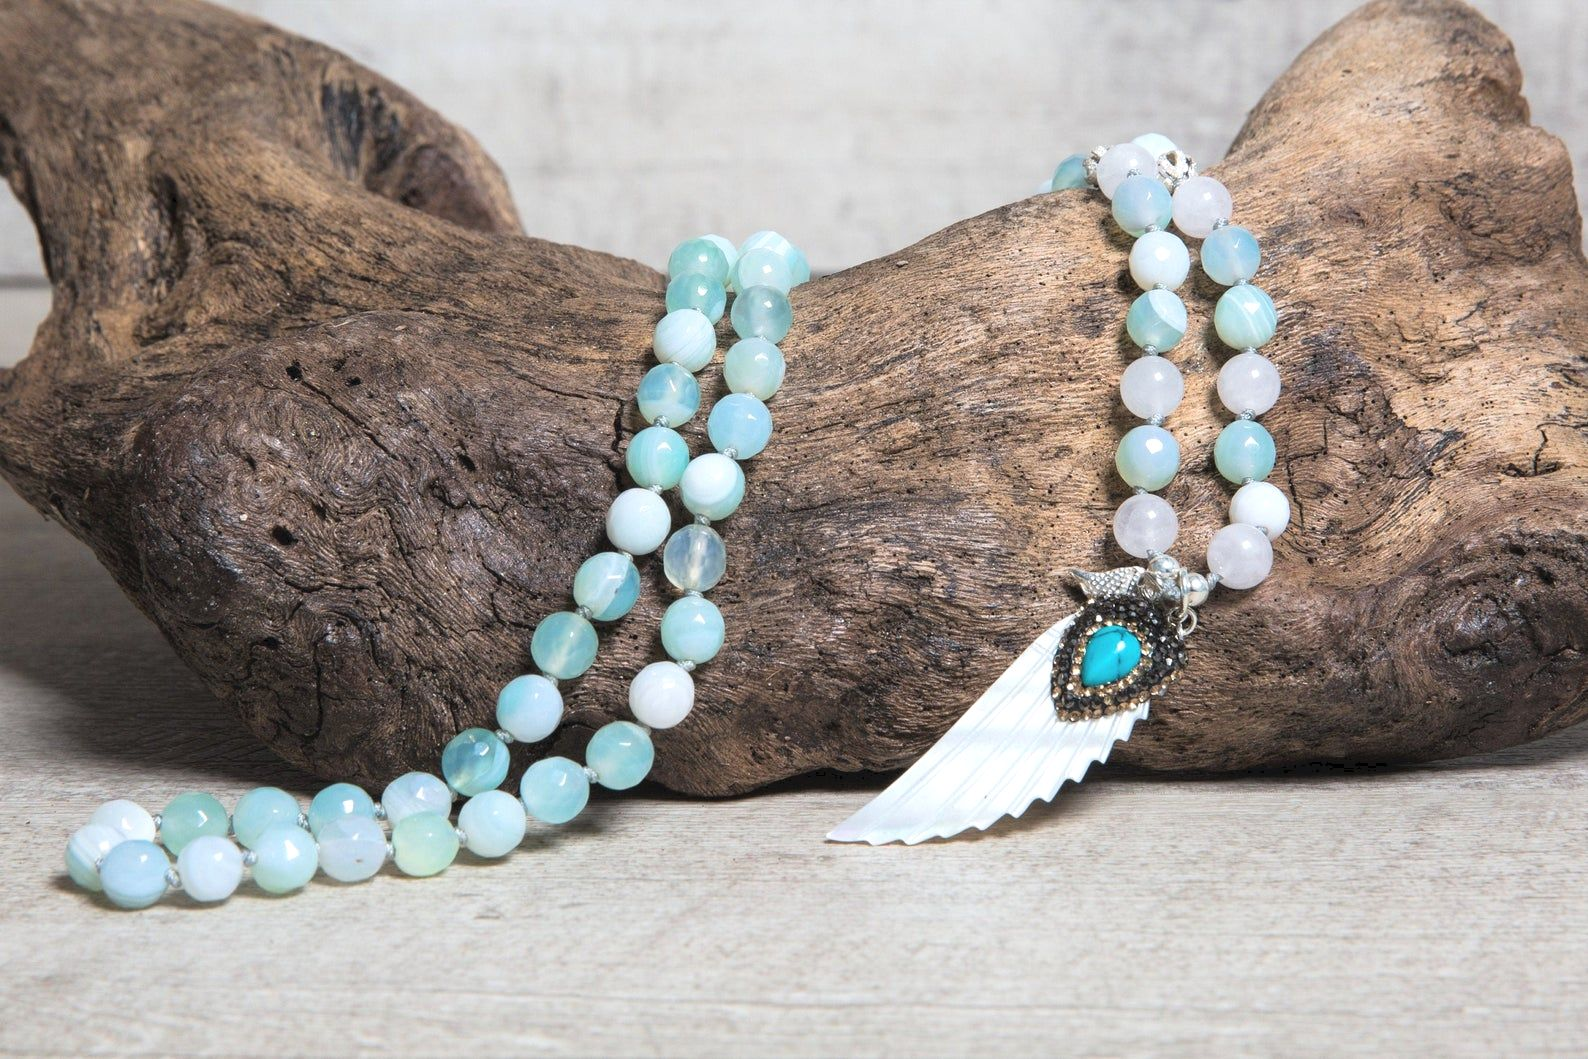 Frosted Agate n' White Jade Mala Beaded Necklace, Ivory Paved Pendant with Turquoise Stone, Summer Boho Jewelry for Her